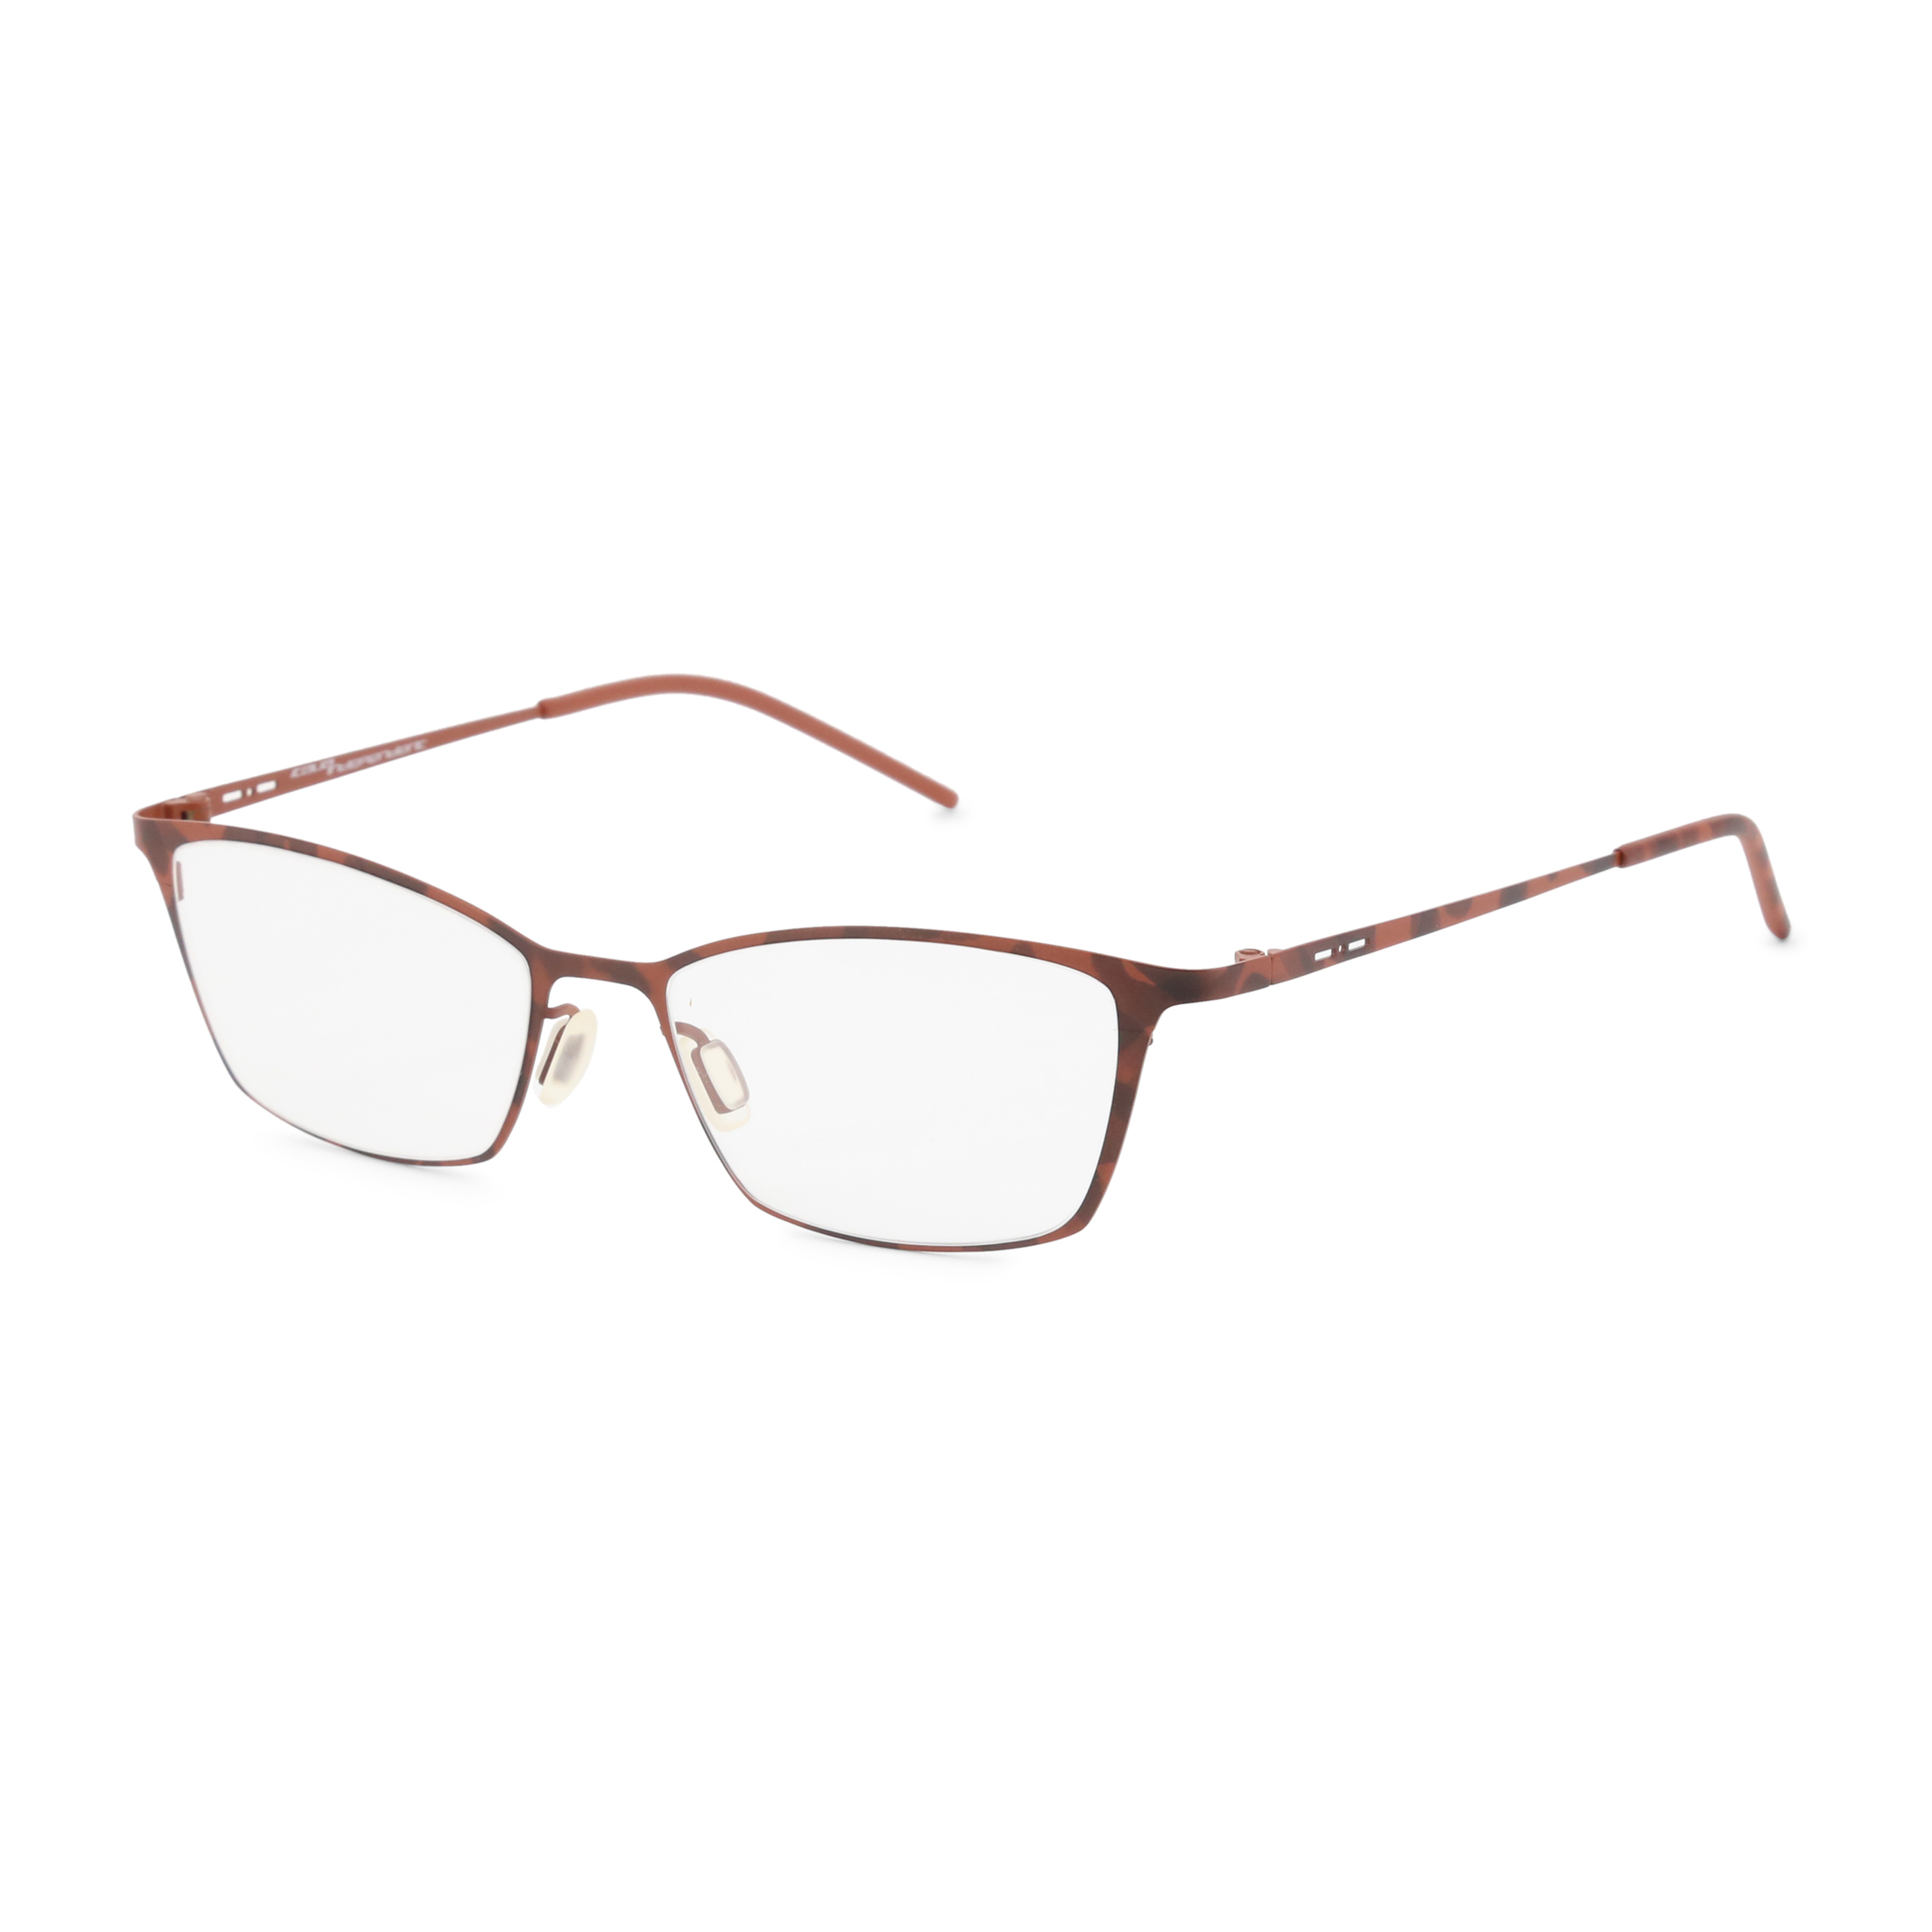 Lunettes Italia Independent – 5208A